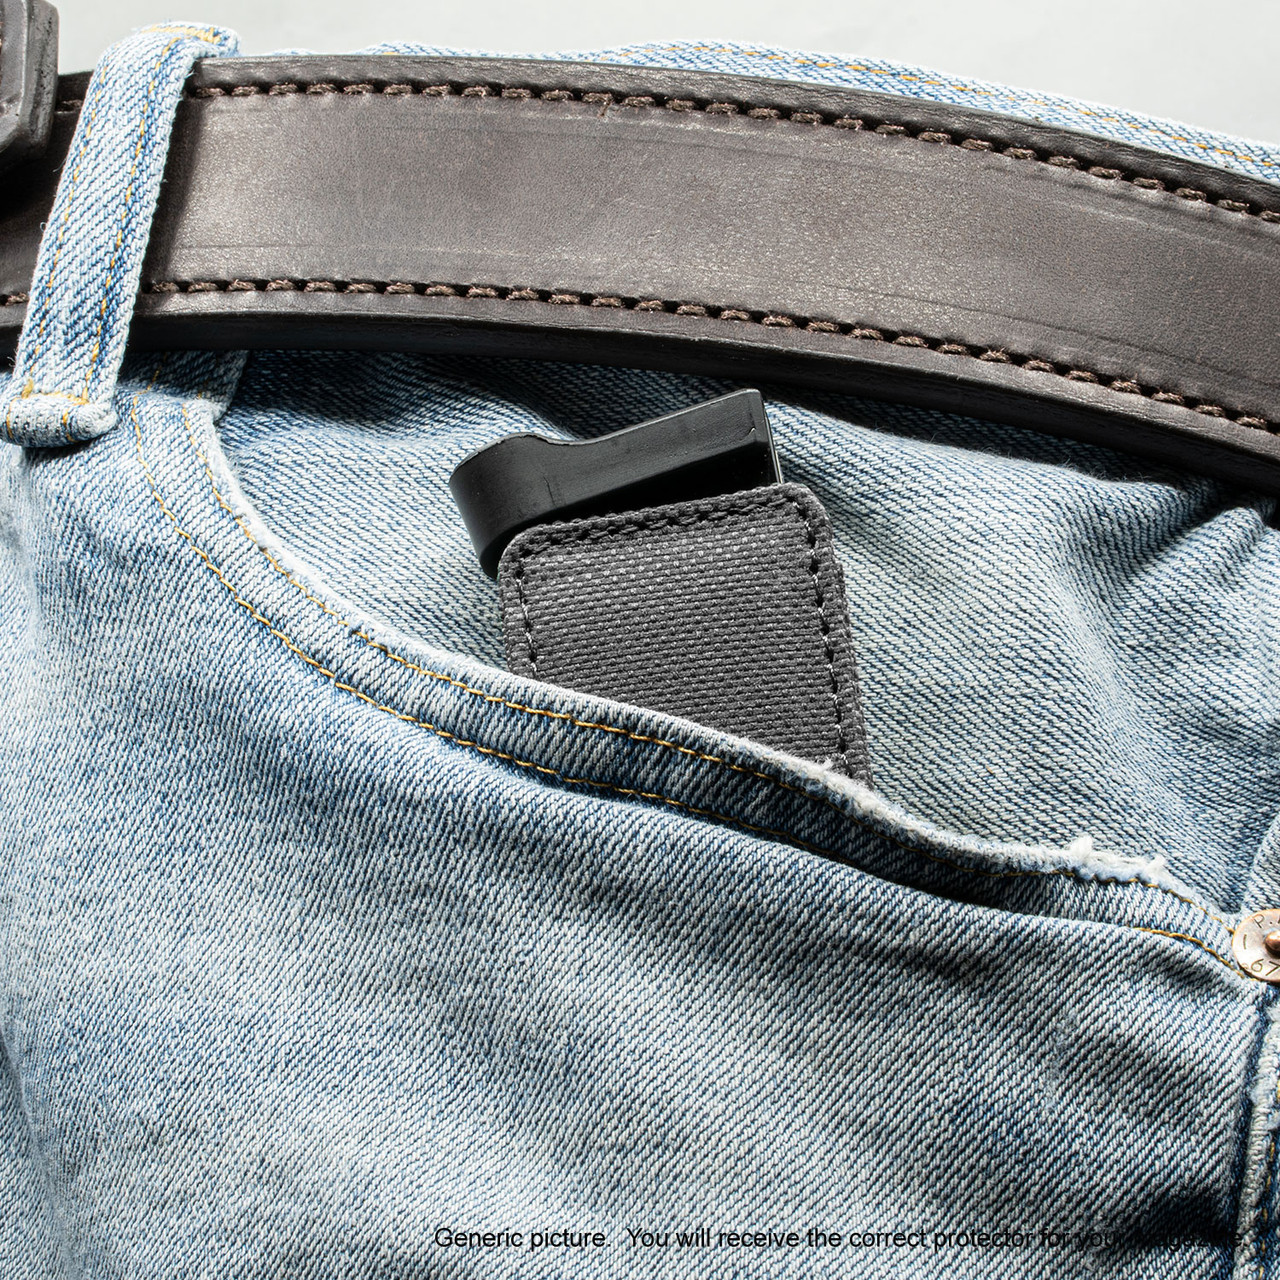 CZ 75D Compact Grey Covert Magazine Pocket Protector